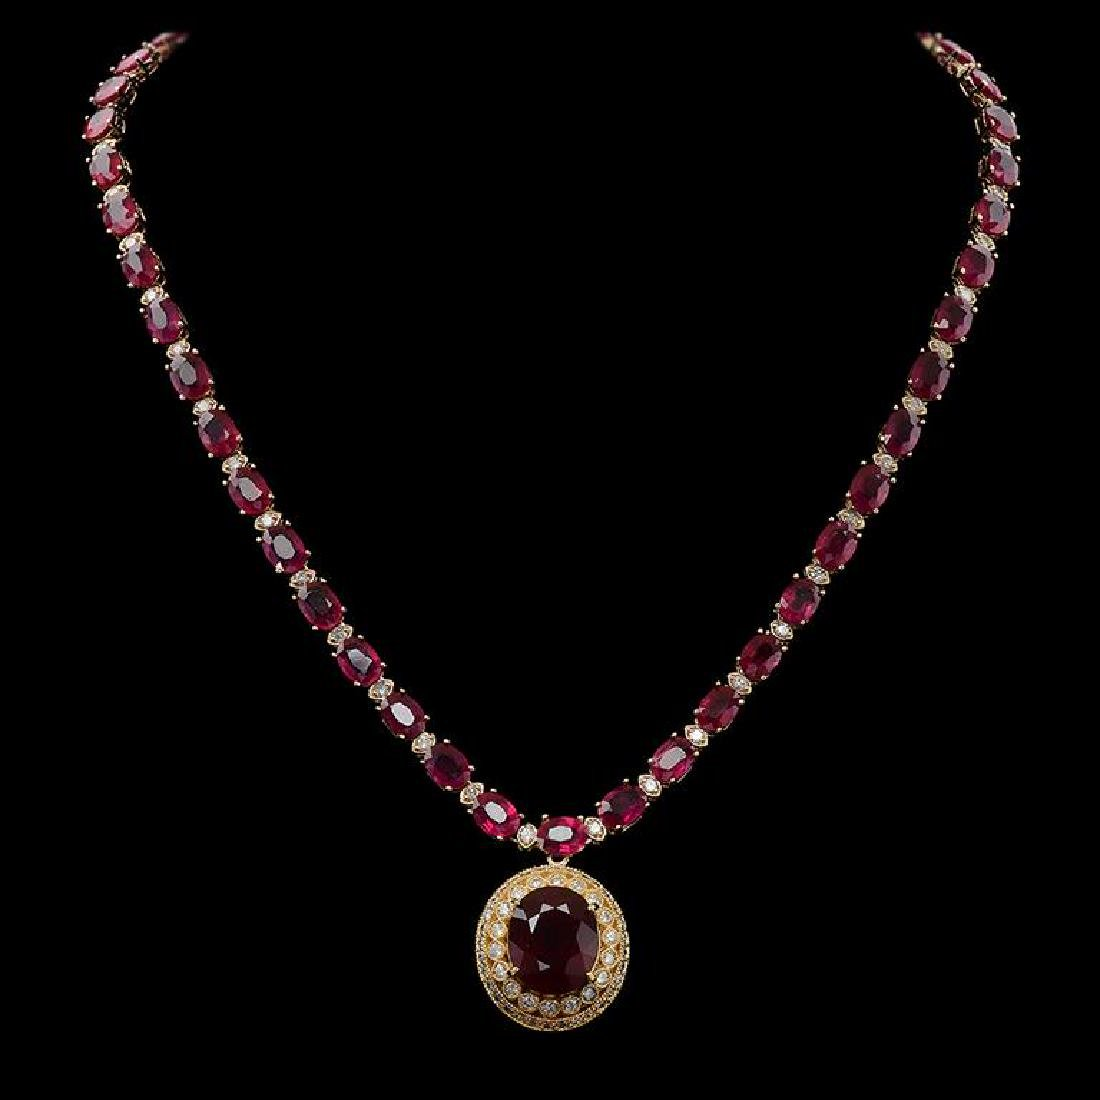 14K Gold 59.34ct Ruby 3.10ct Diamond Necklace